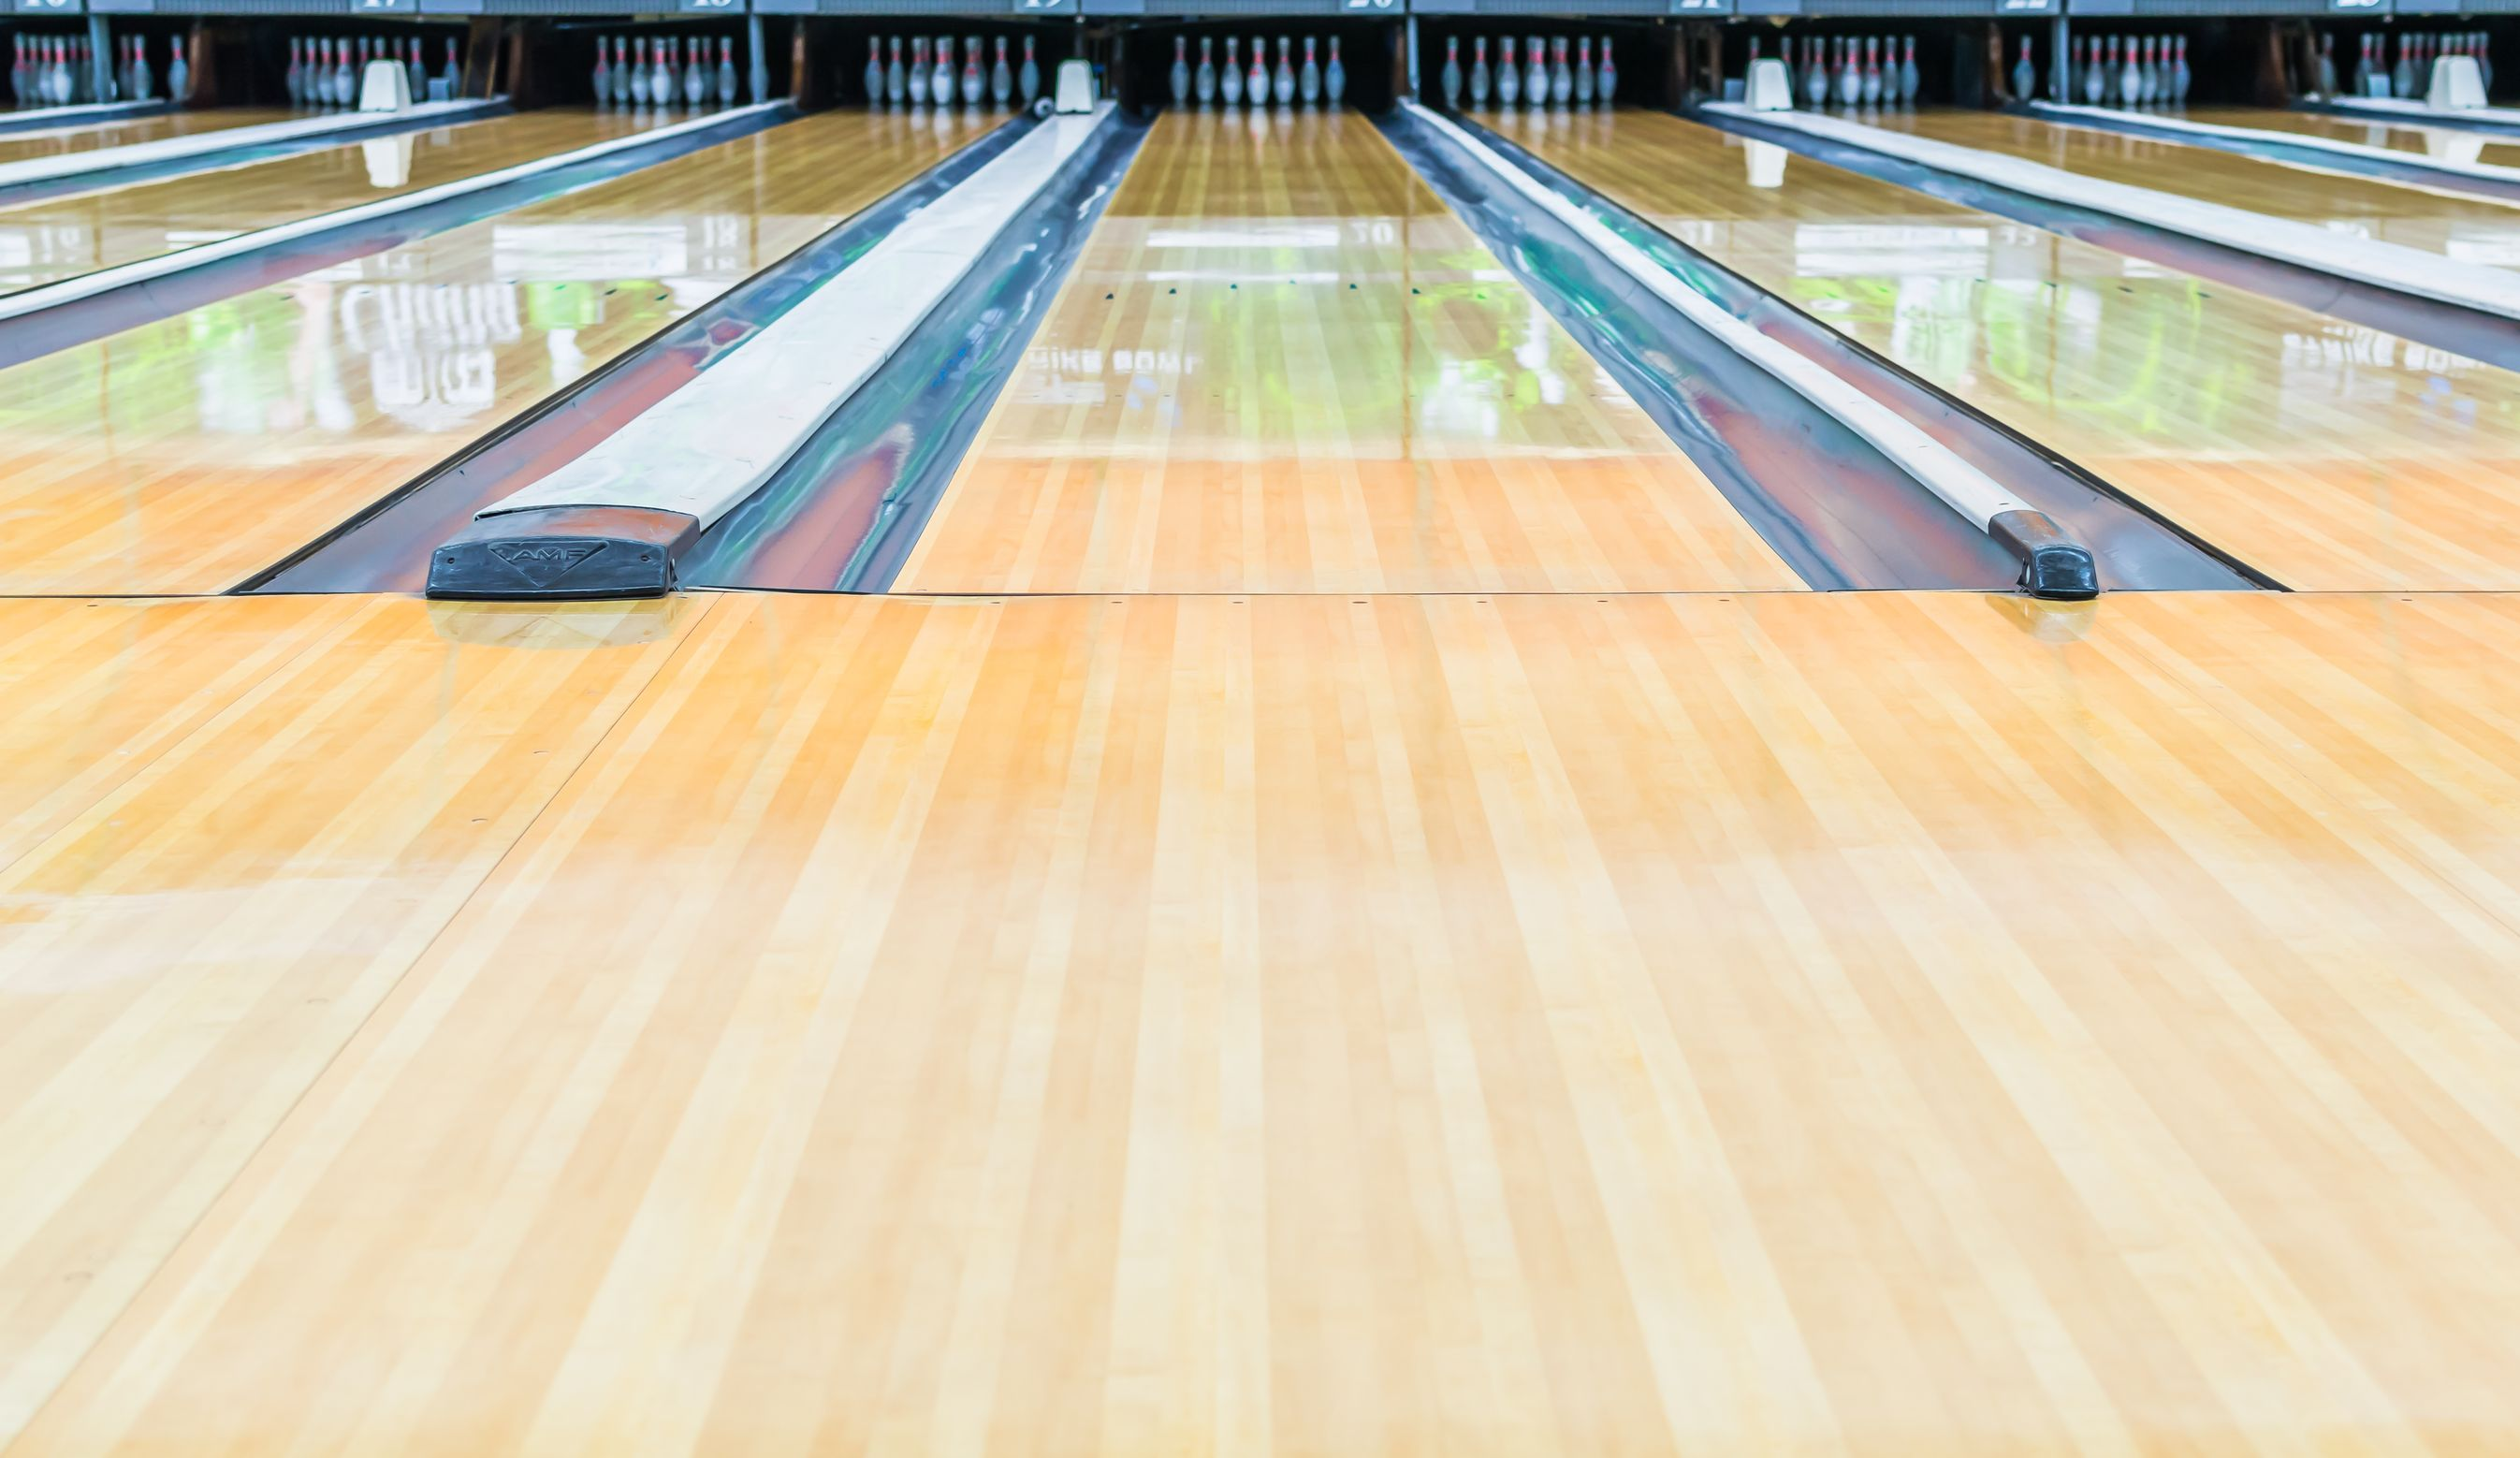 21398091 Bowling Alley With Surface Polished With Wax